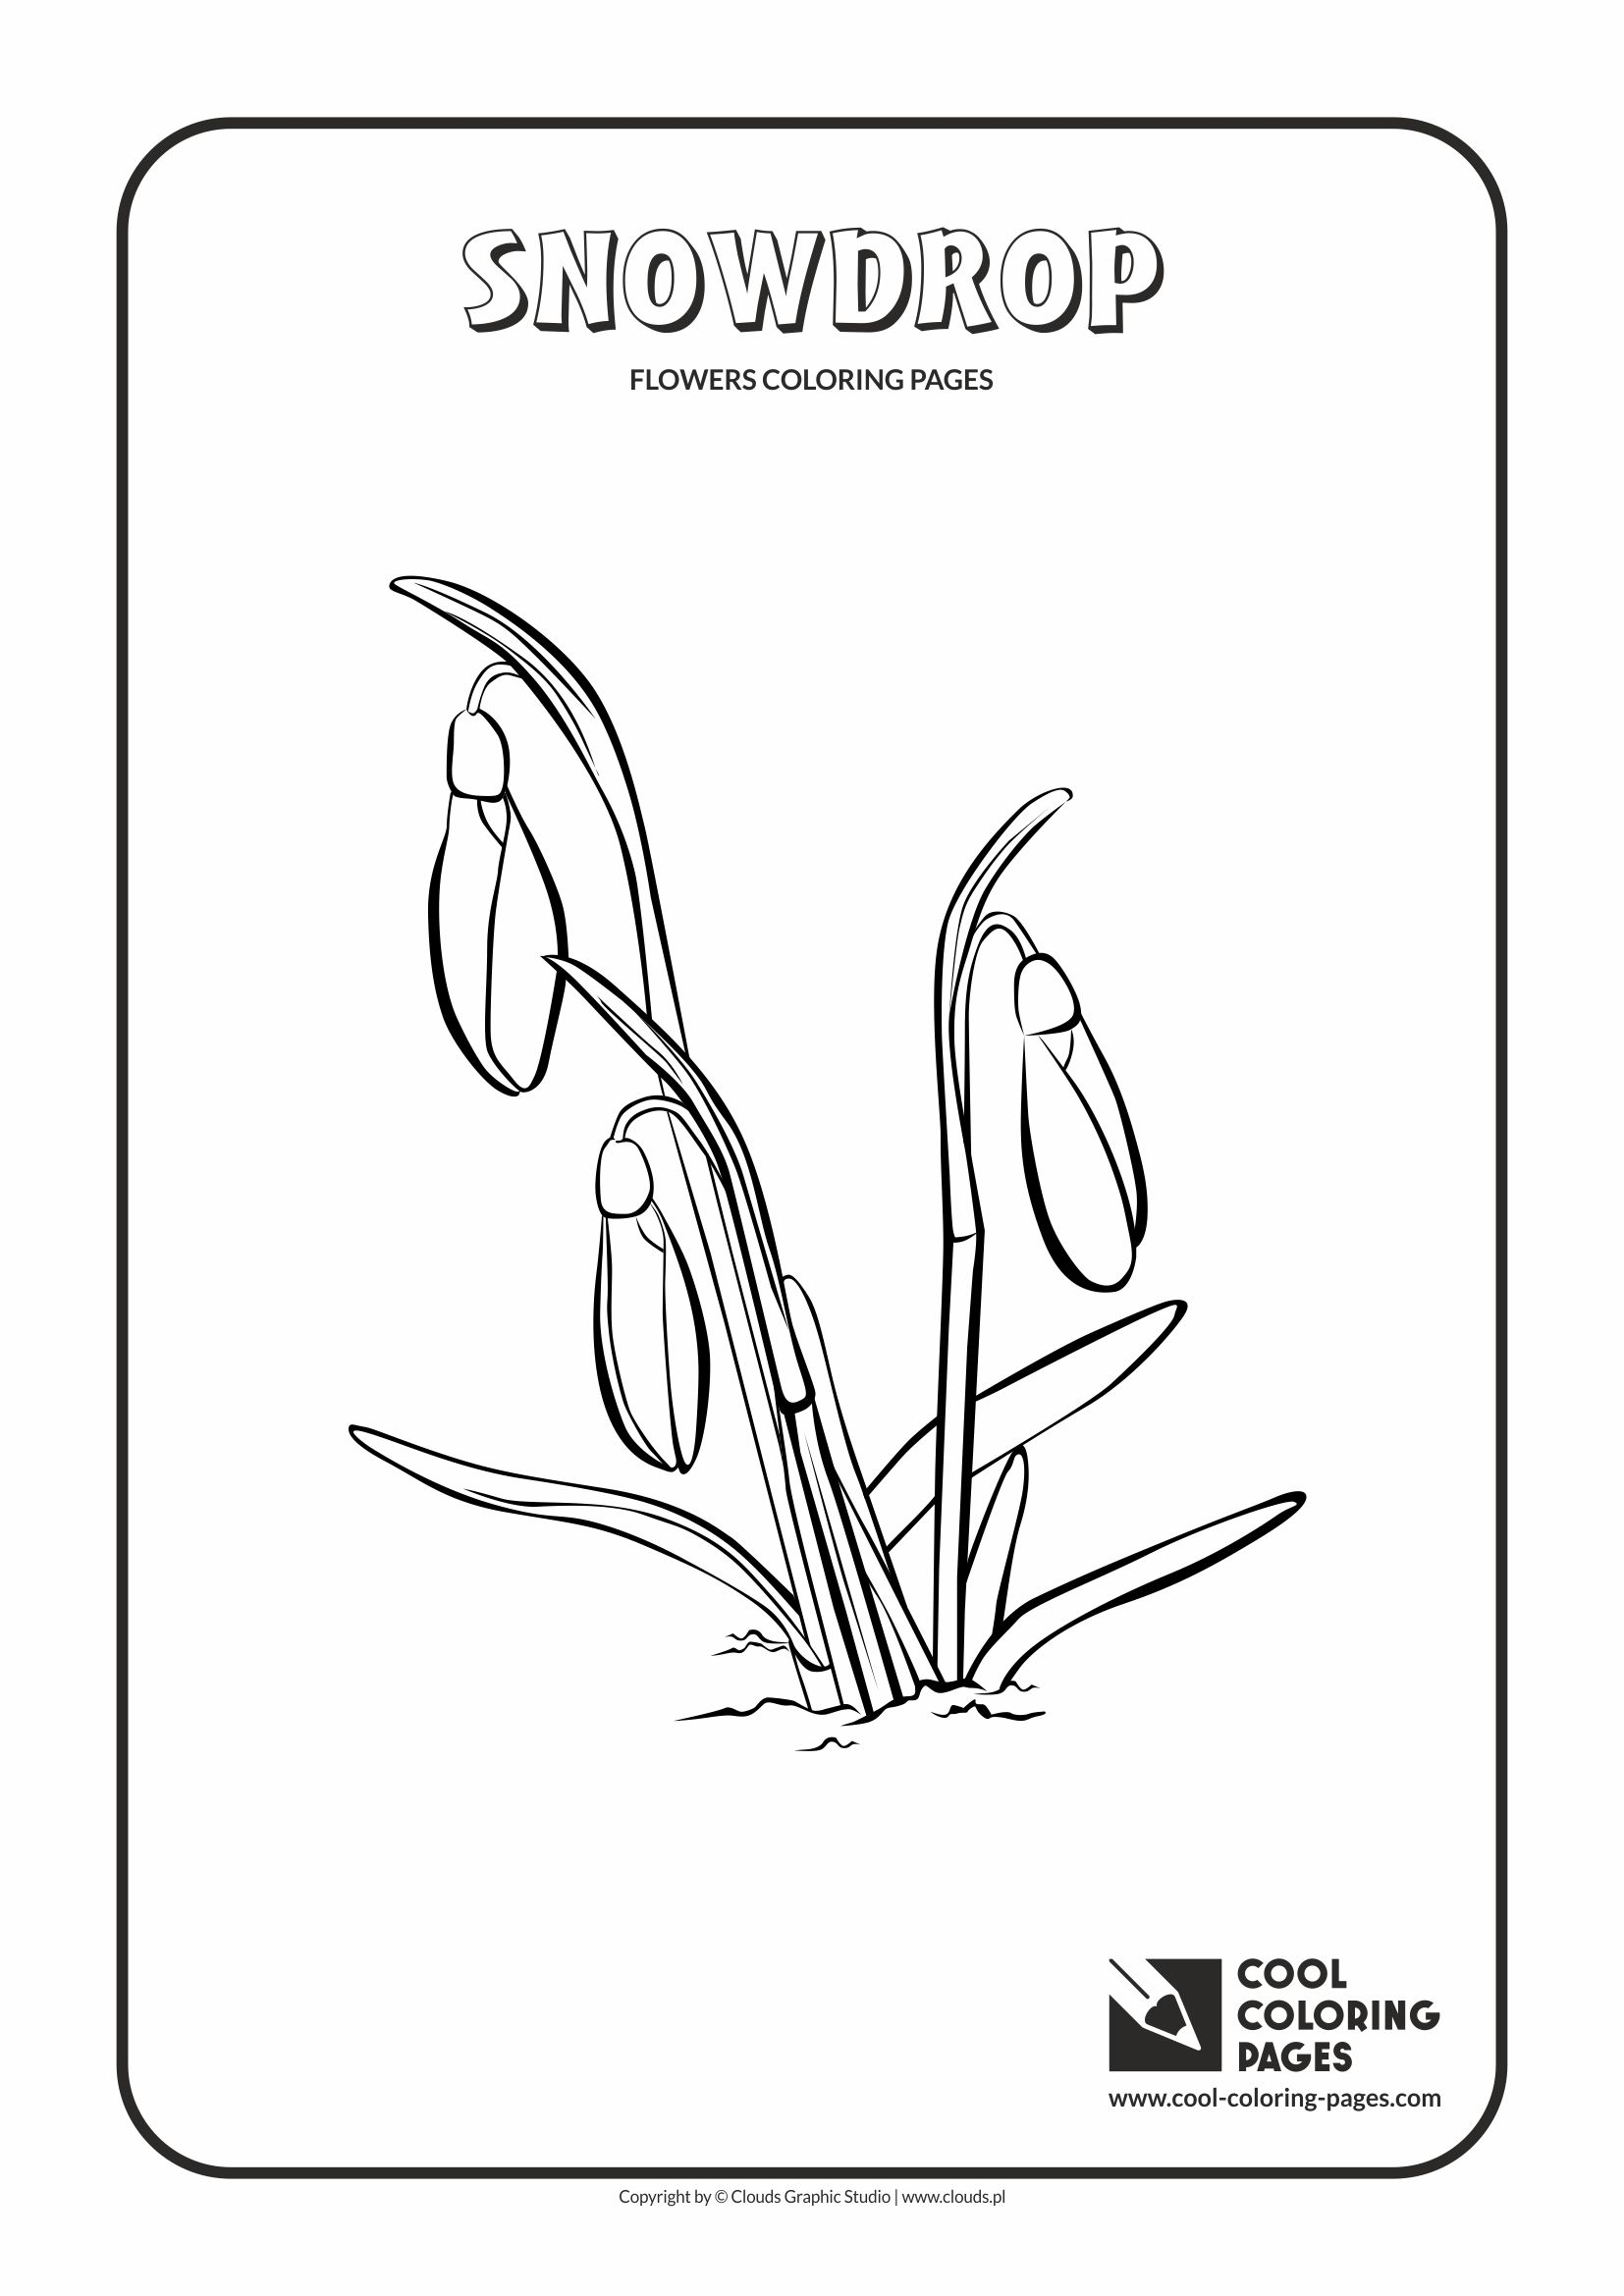 snowdrop coloring page cool coloring pages